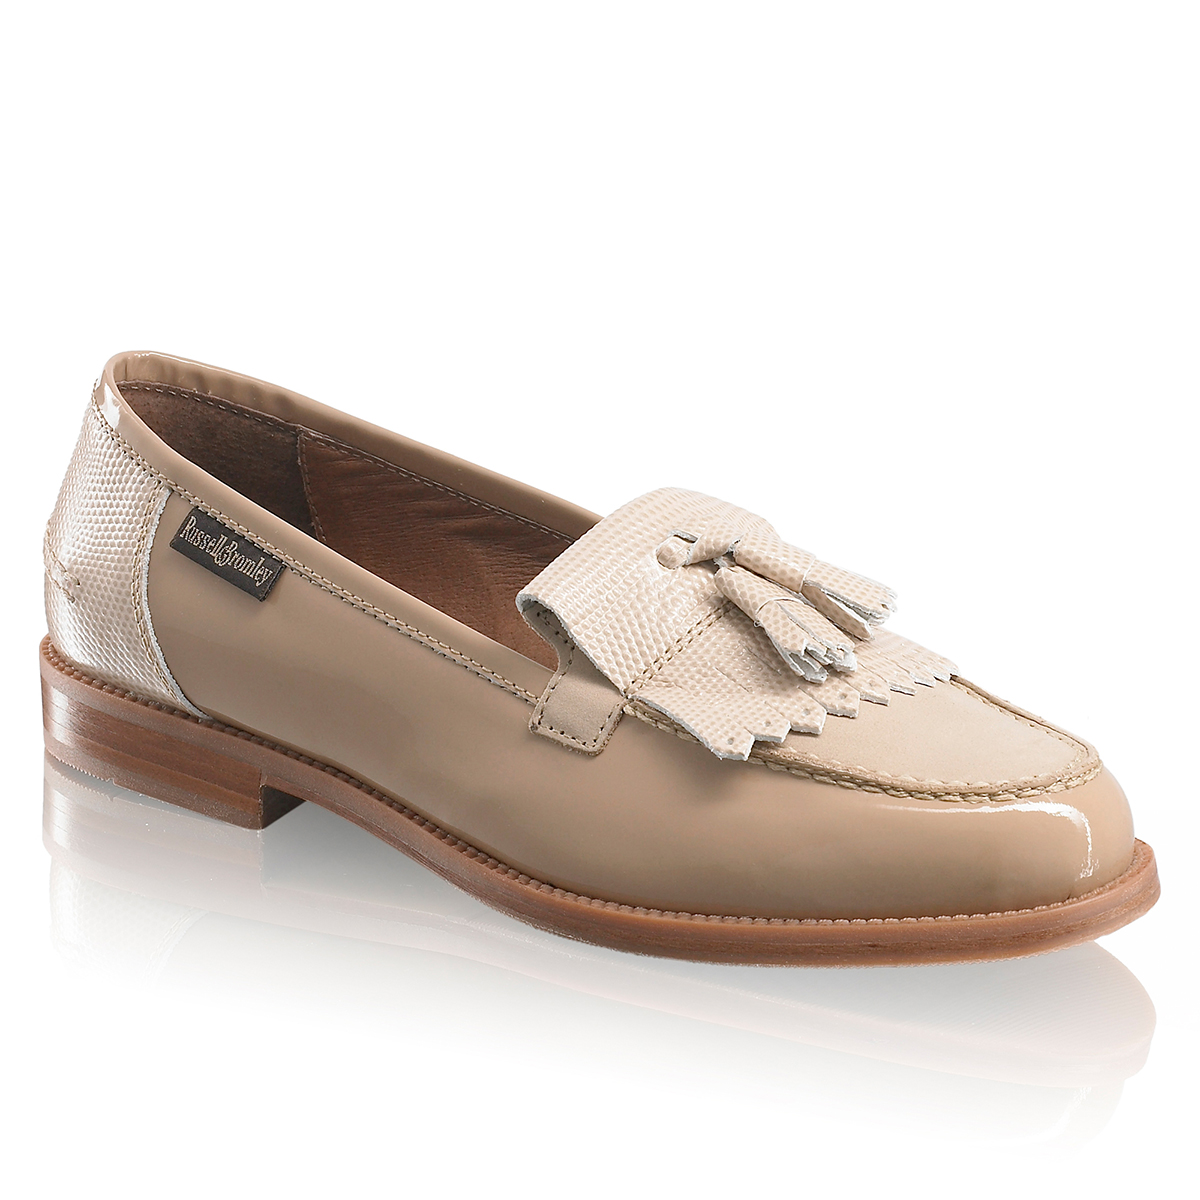 russell and bromley chester loafers